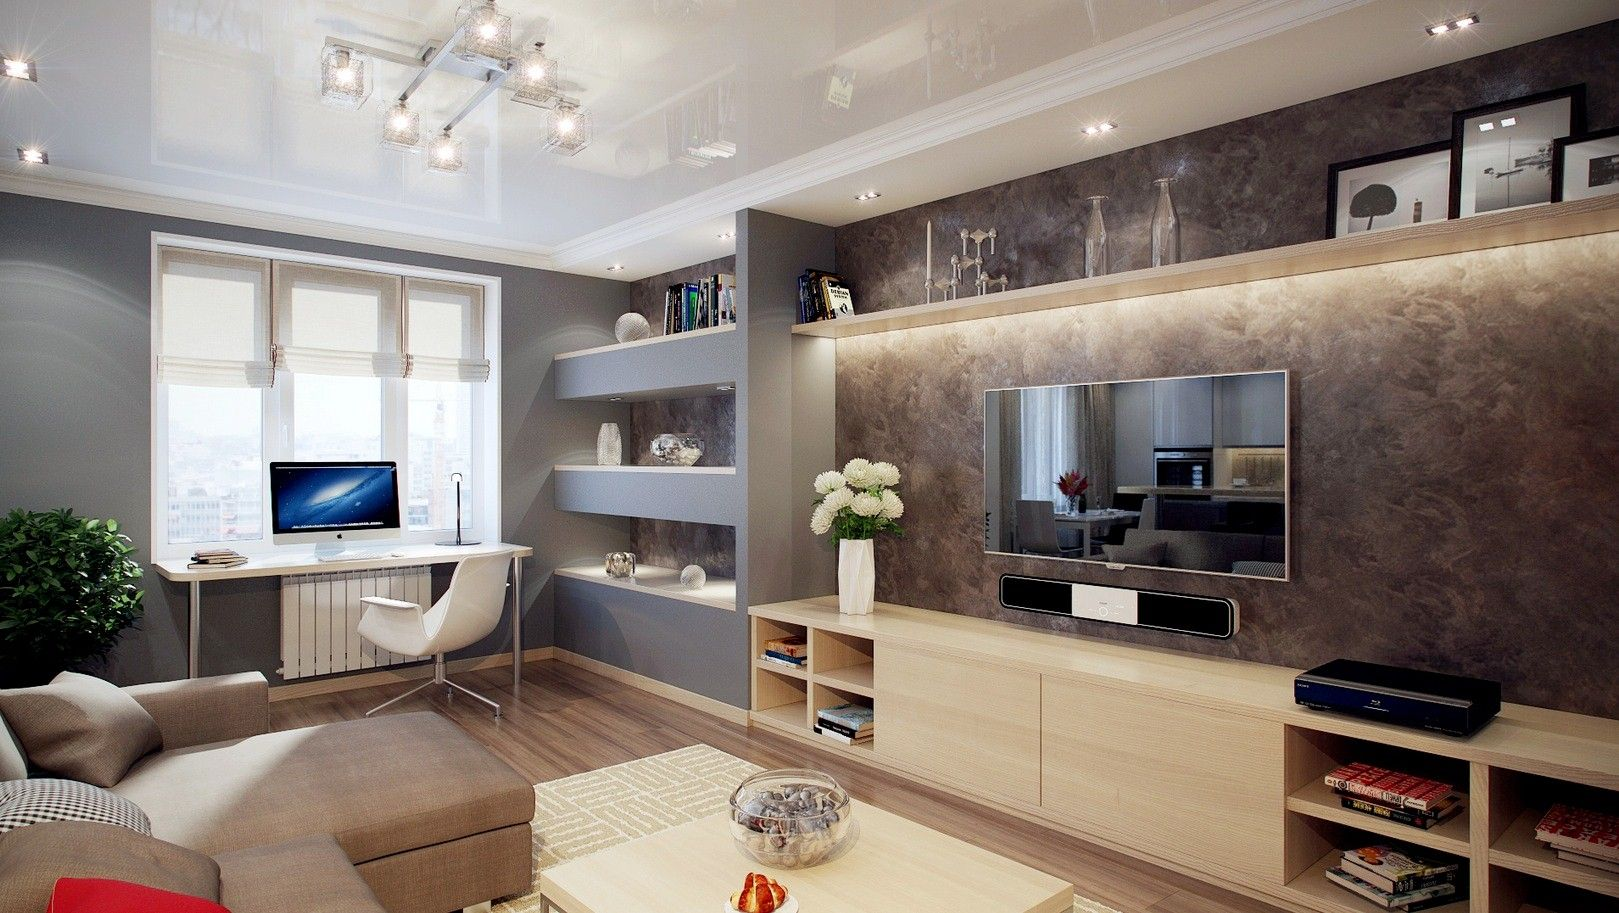 Image result for modern rustic tv feature wall For the Home